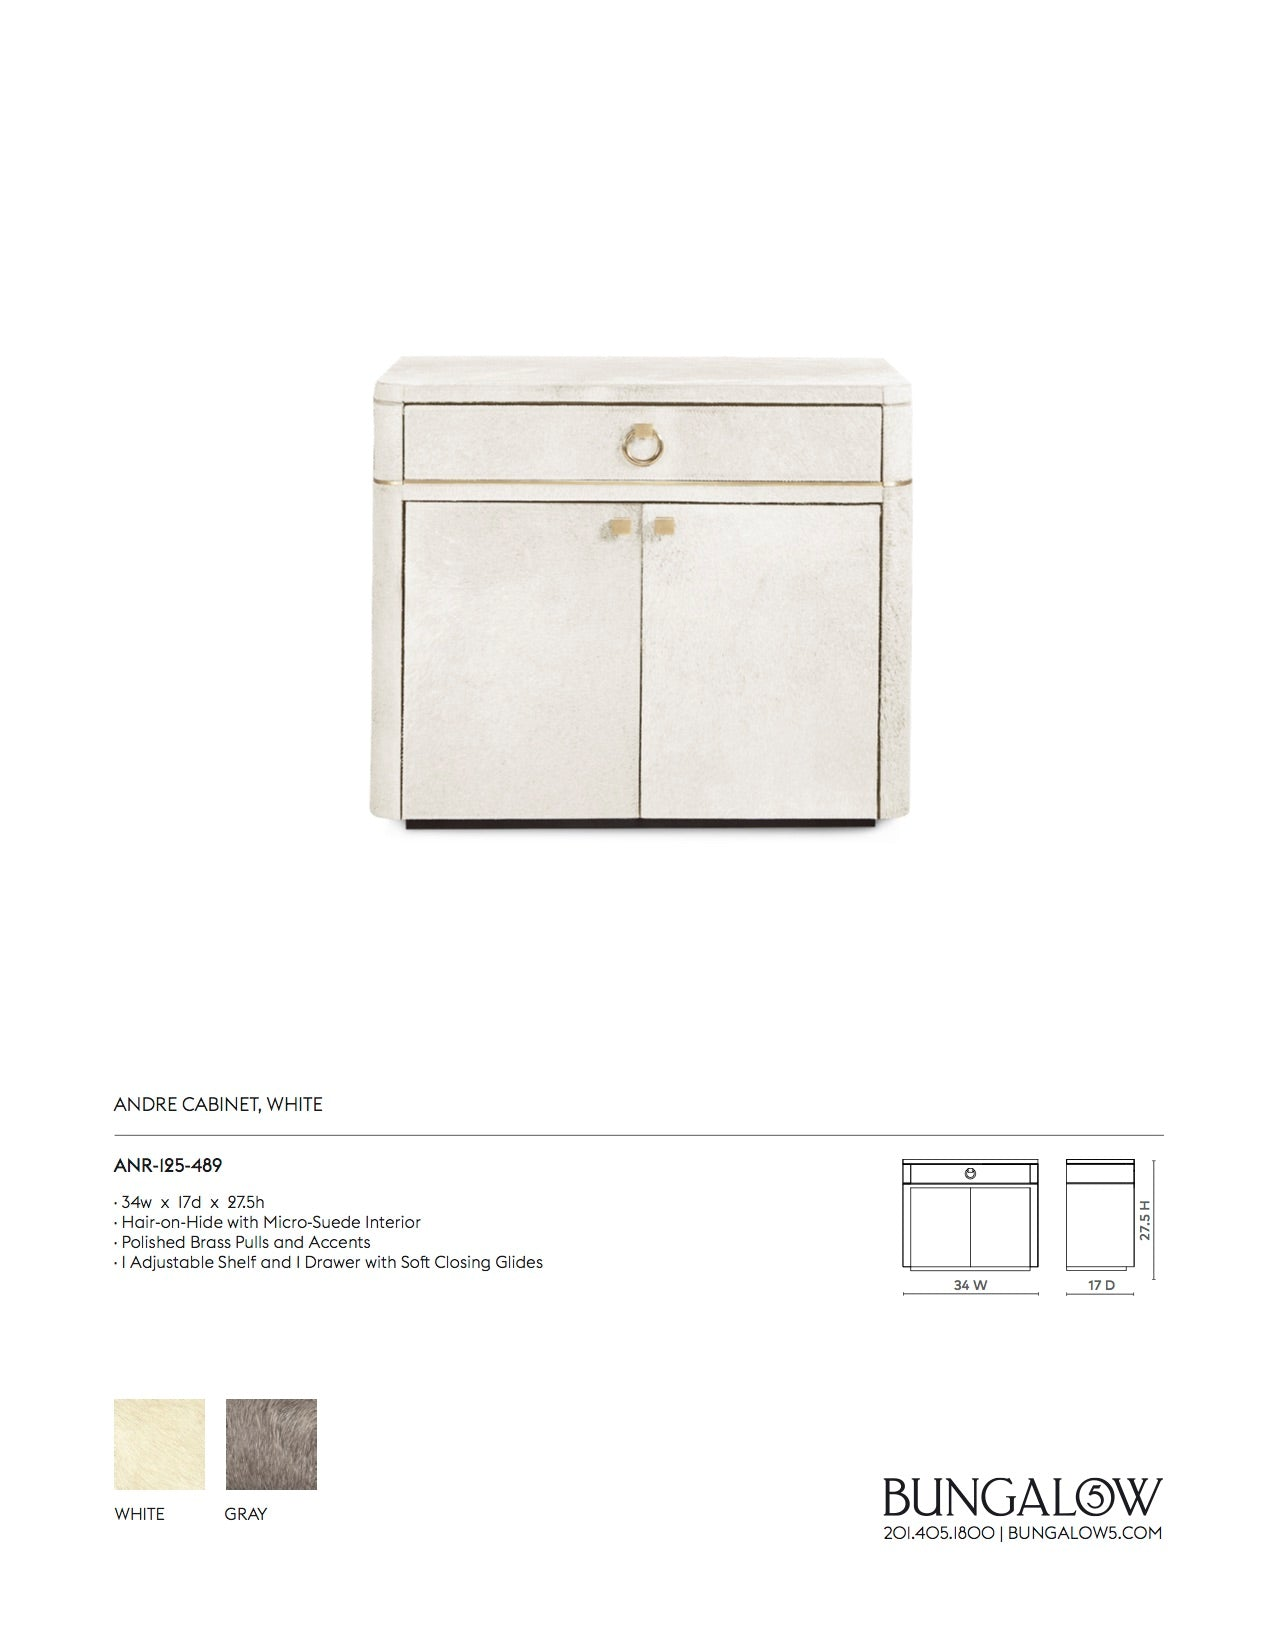 Bungalow 5 Andre Cabinet White Tear Sheet